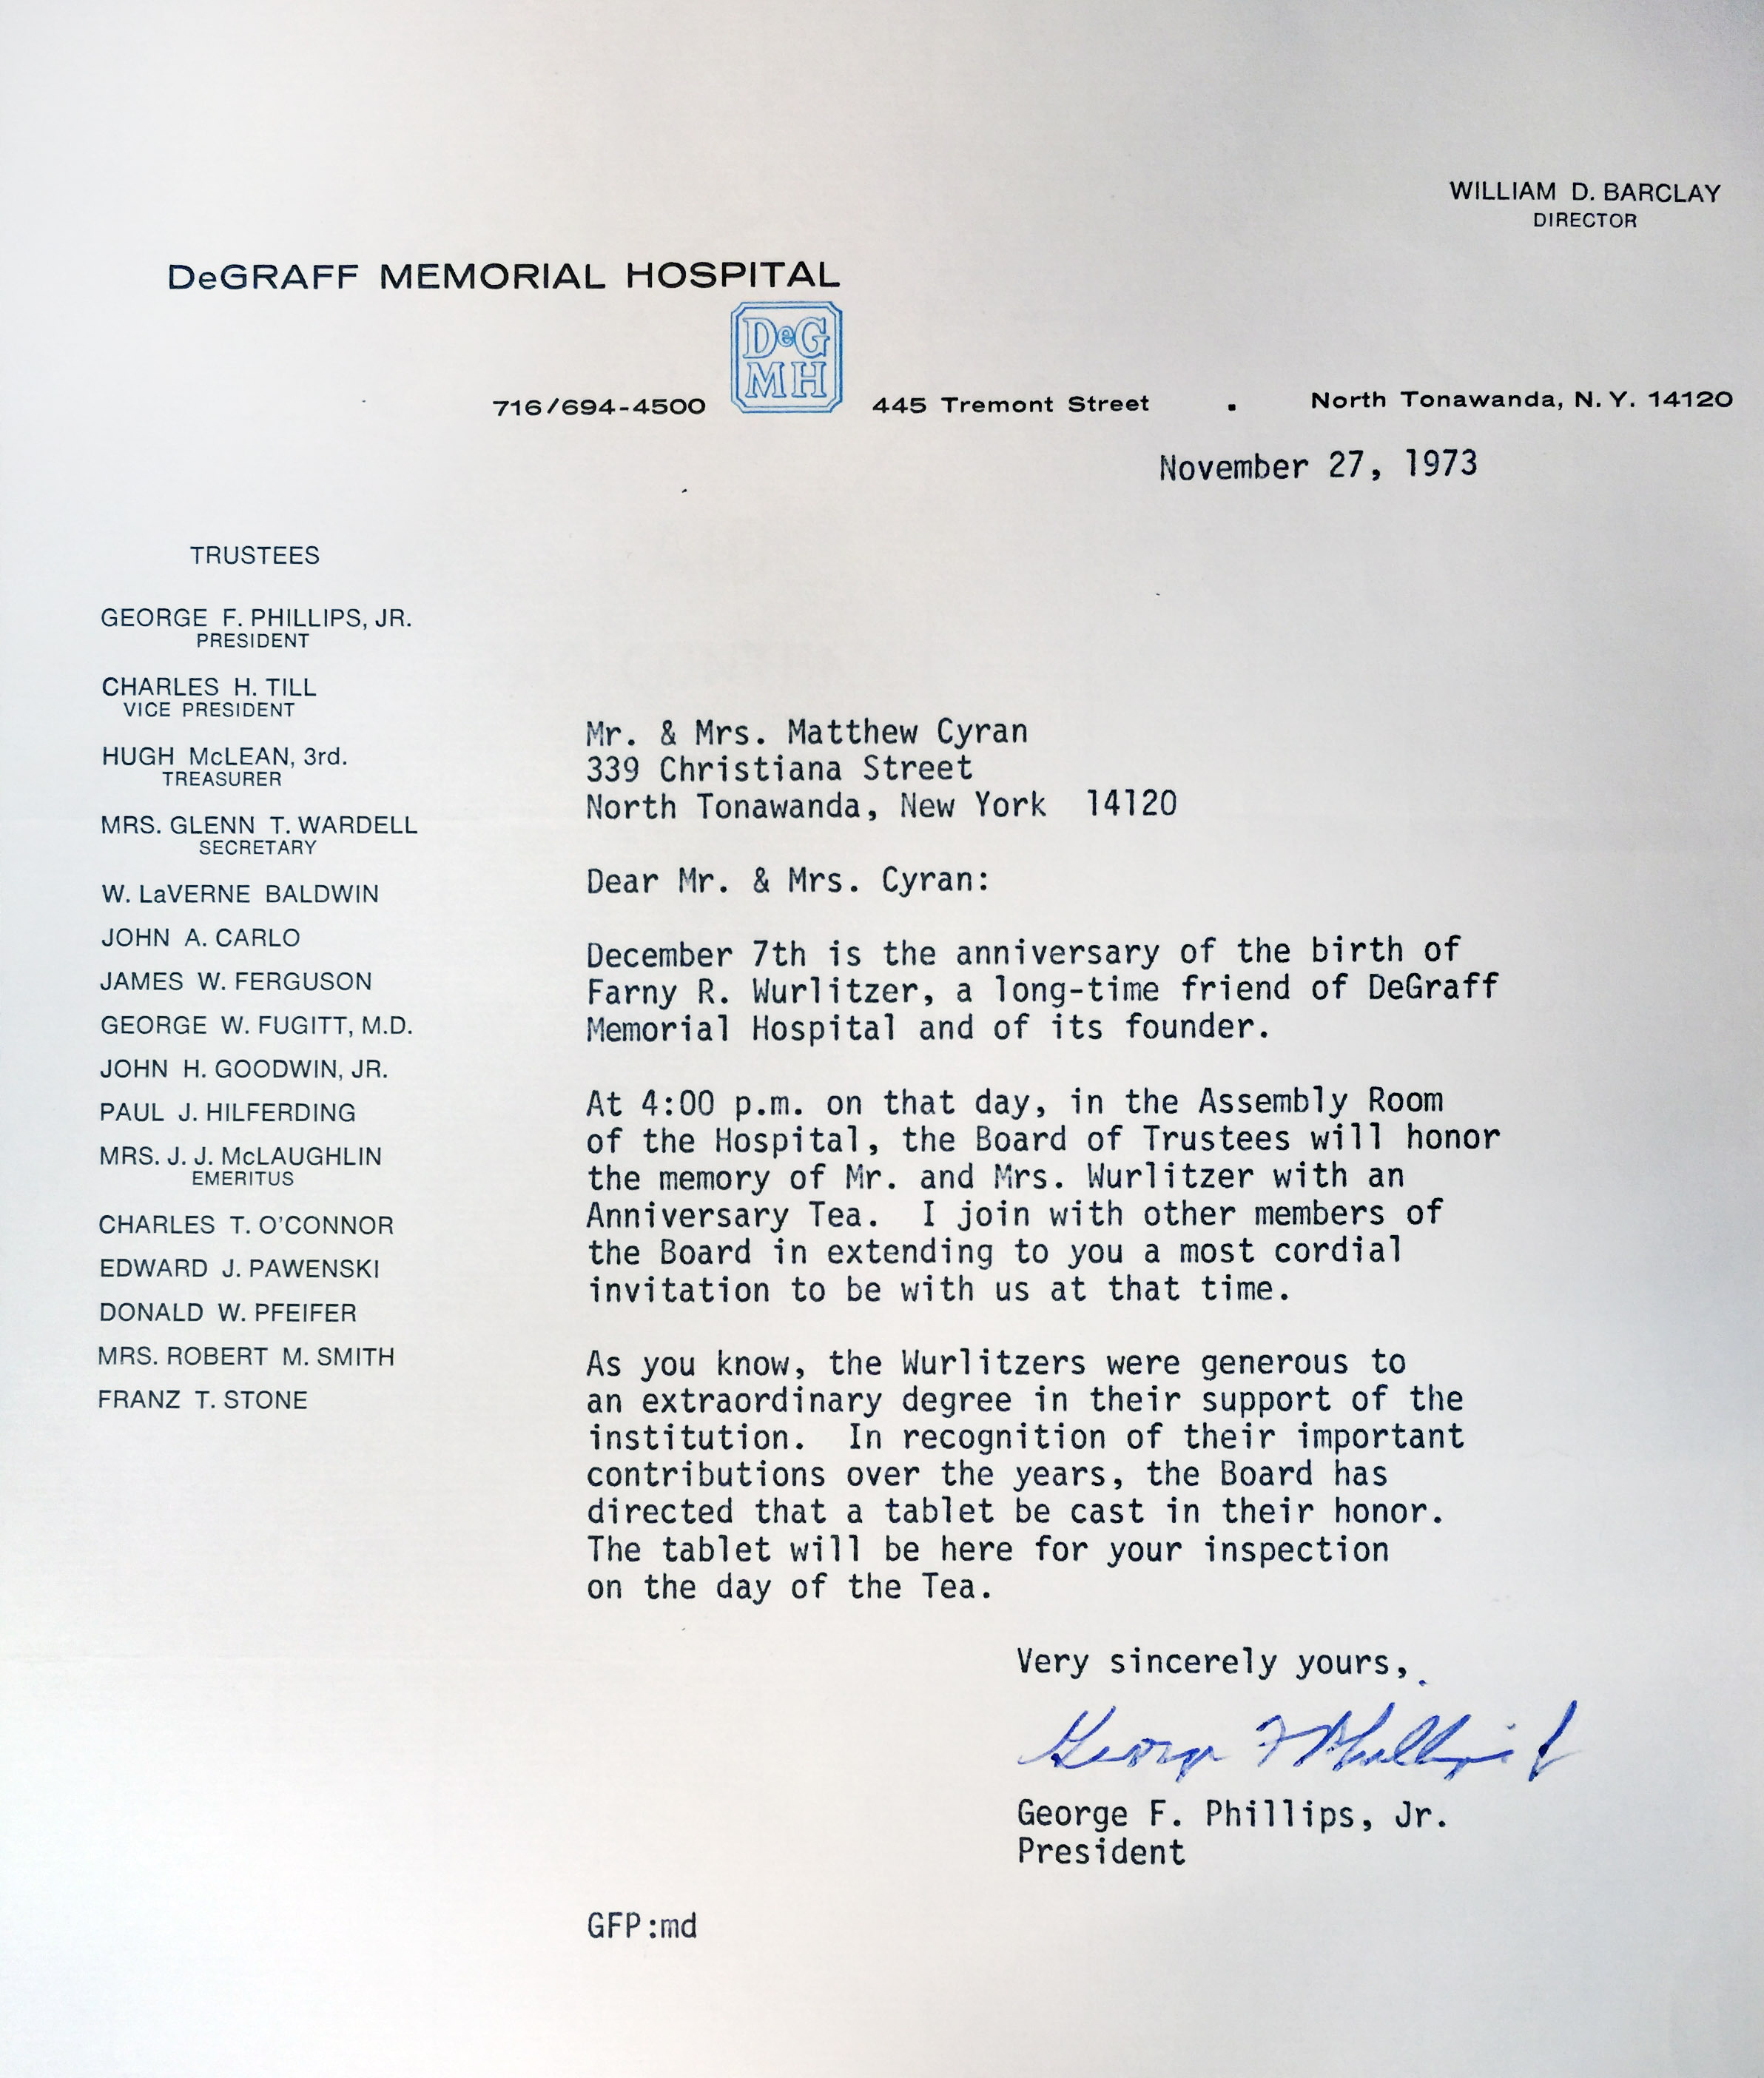 Invitation to anniversary tea in memory of Farny Wurlitzer at DeGraff Hospital, letter (1973-11-27).jpg